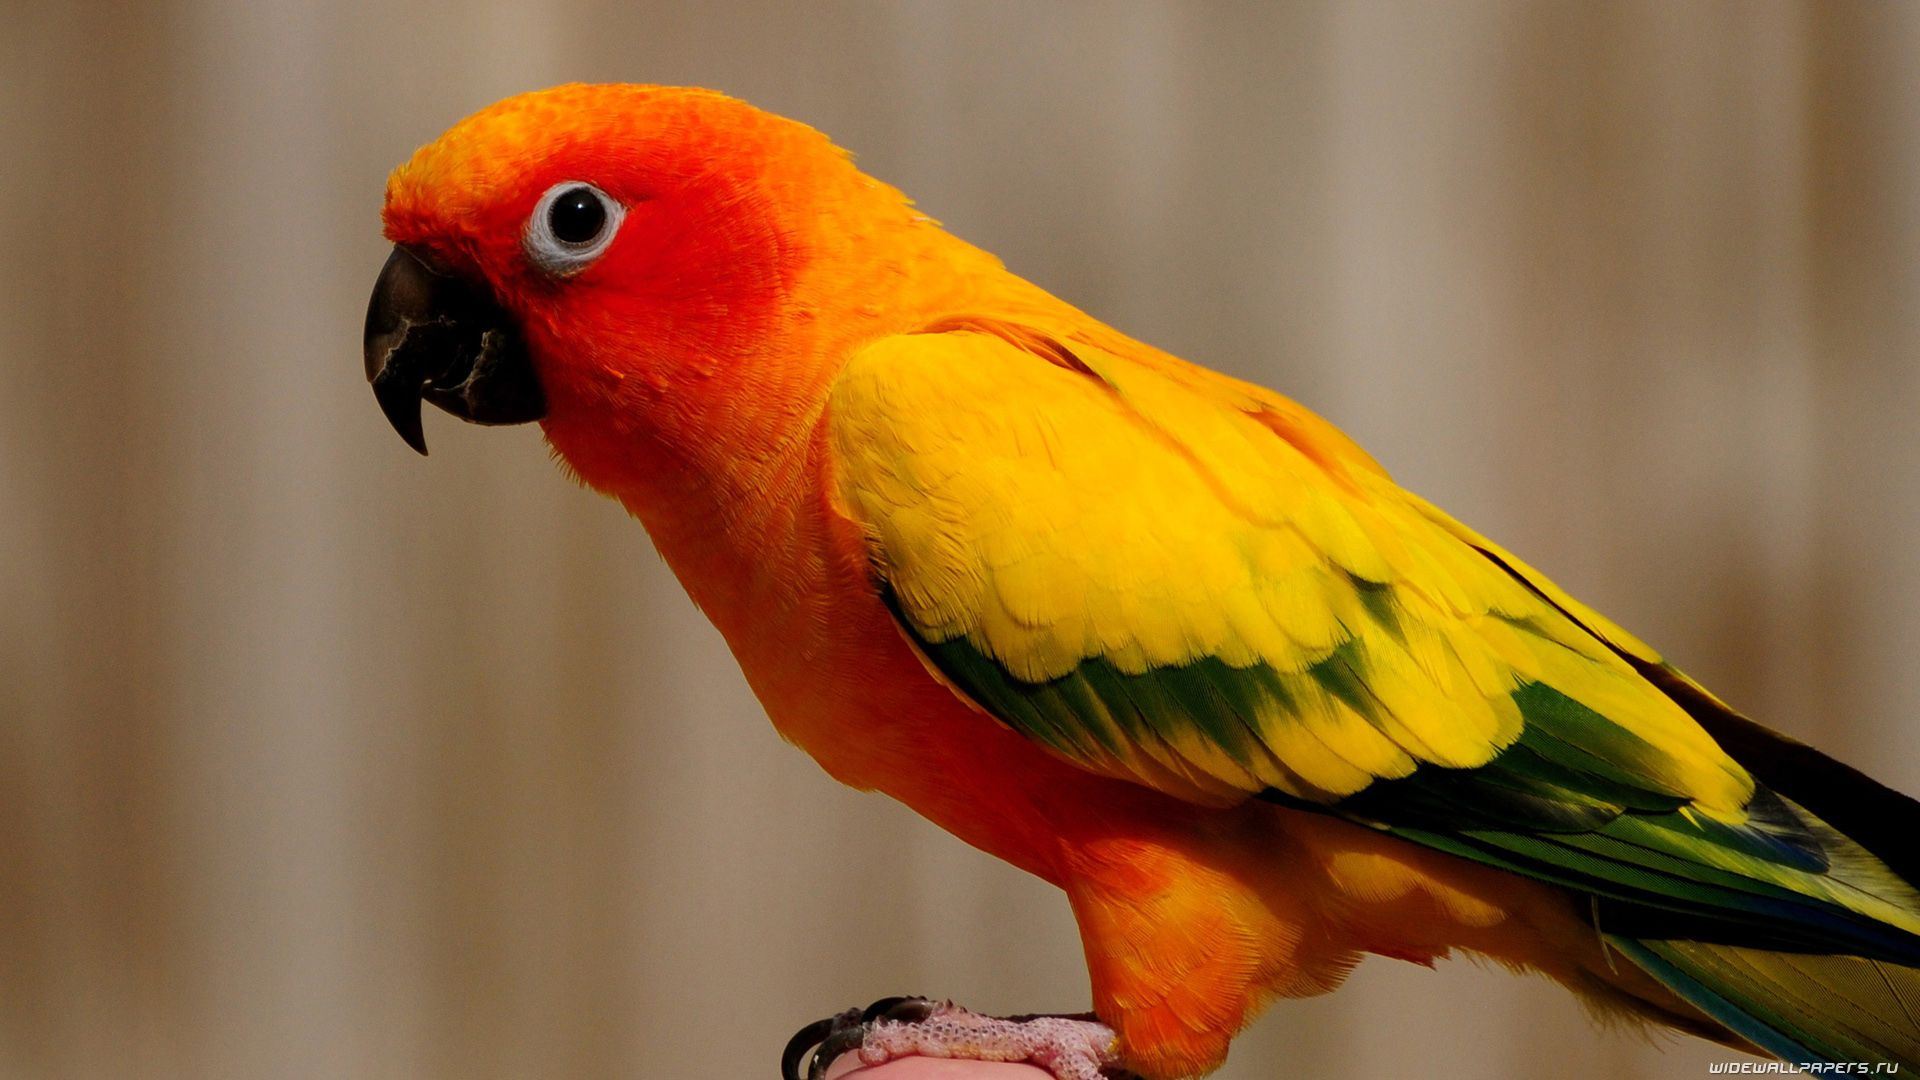 Parakeet hd wallpaper 1080